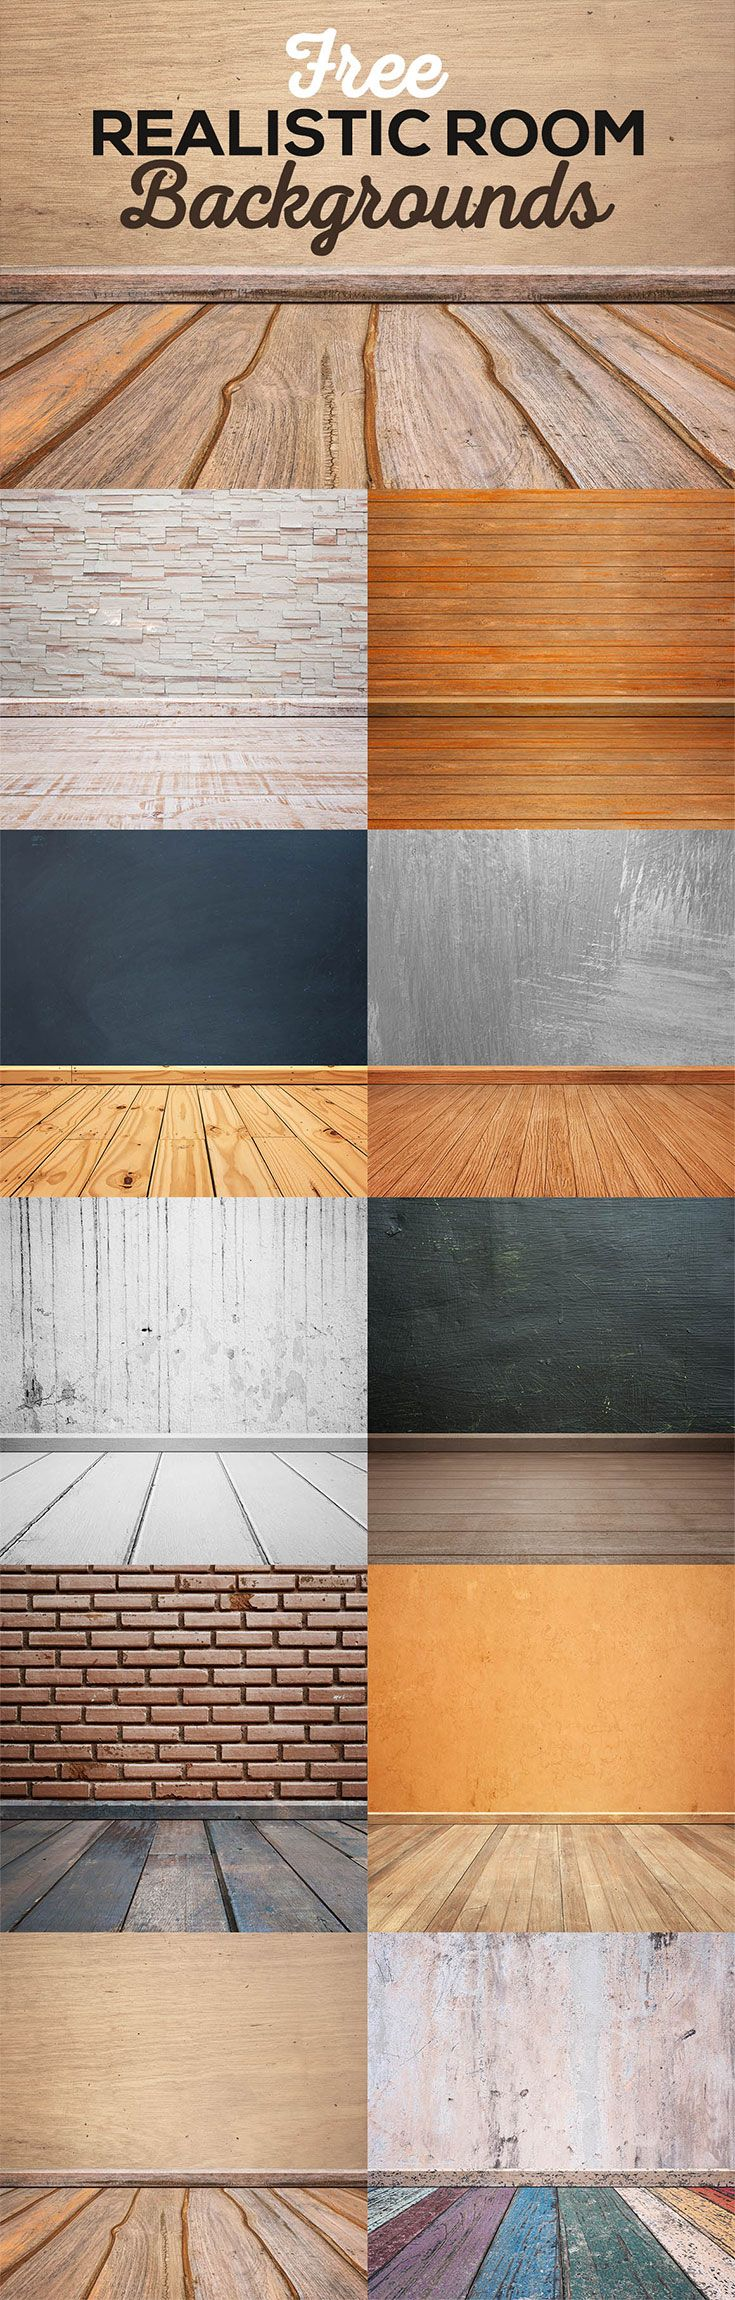 Make your design even more stylish using these images as the background. http://photoshoproadmap.com/dealjumbo-com-discounted-design-bundles-with-extended-license-free-room-backgrounds/?utm_campaign=coschedule&utm_source=pinterest&utm_medium=Photoshop%20Roadmap&utm_content=Download%20a%20set%20of%20free%20realistic%20rooms%20backgrounds